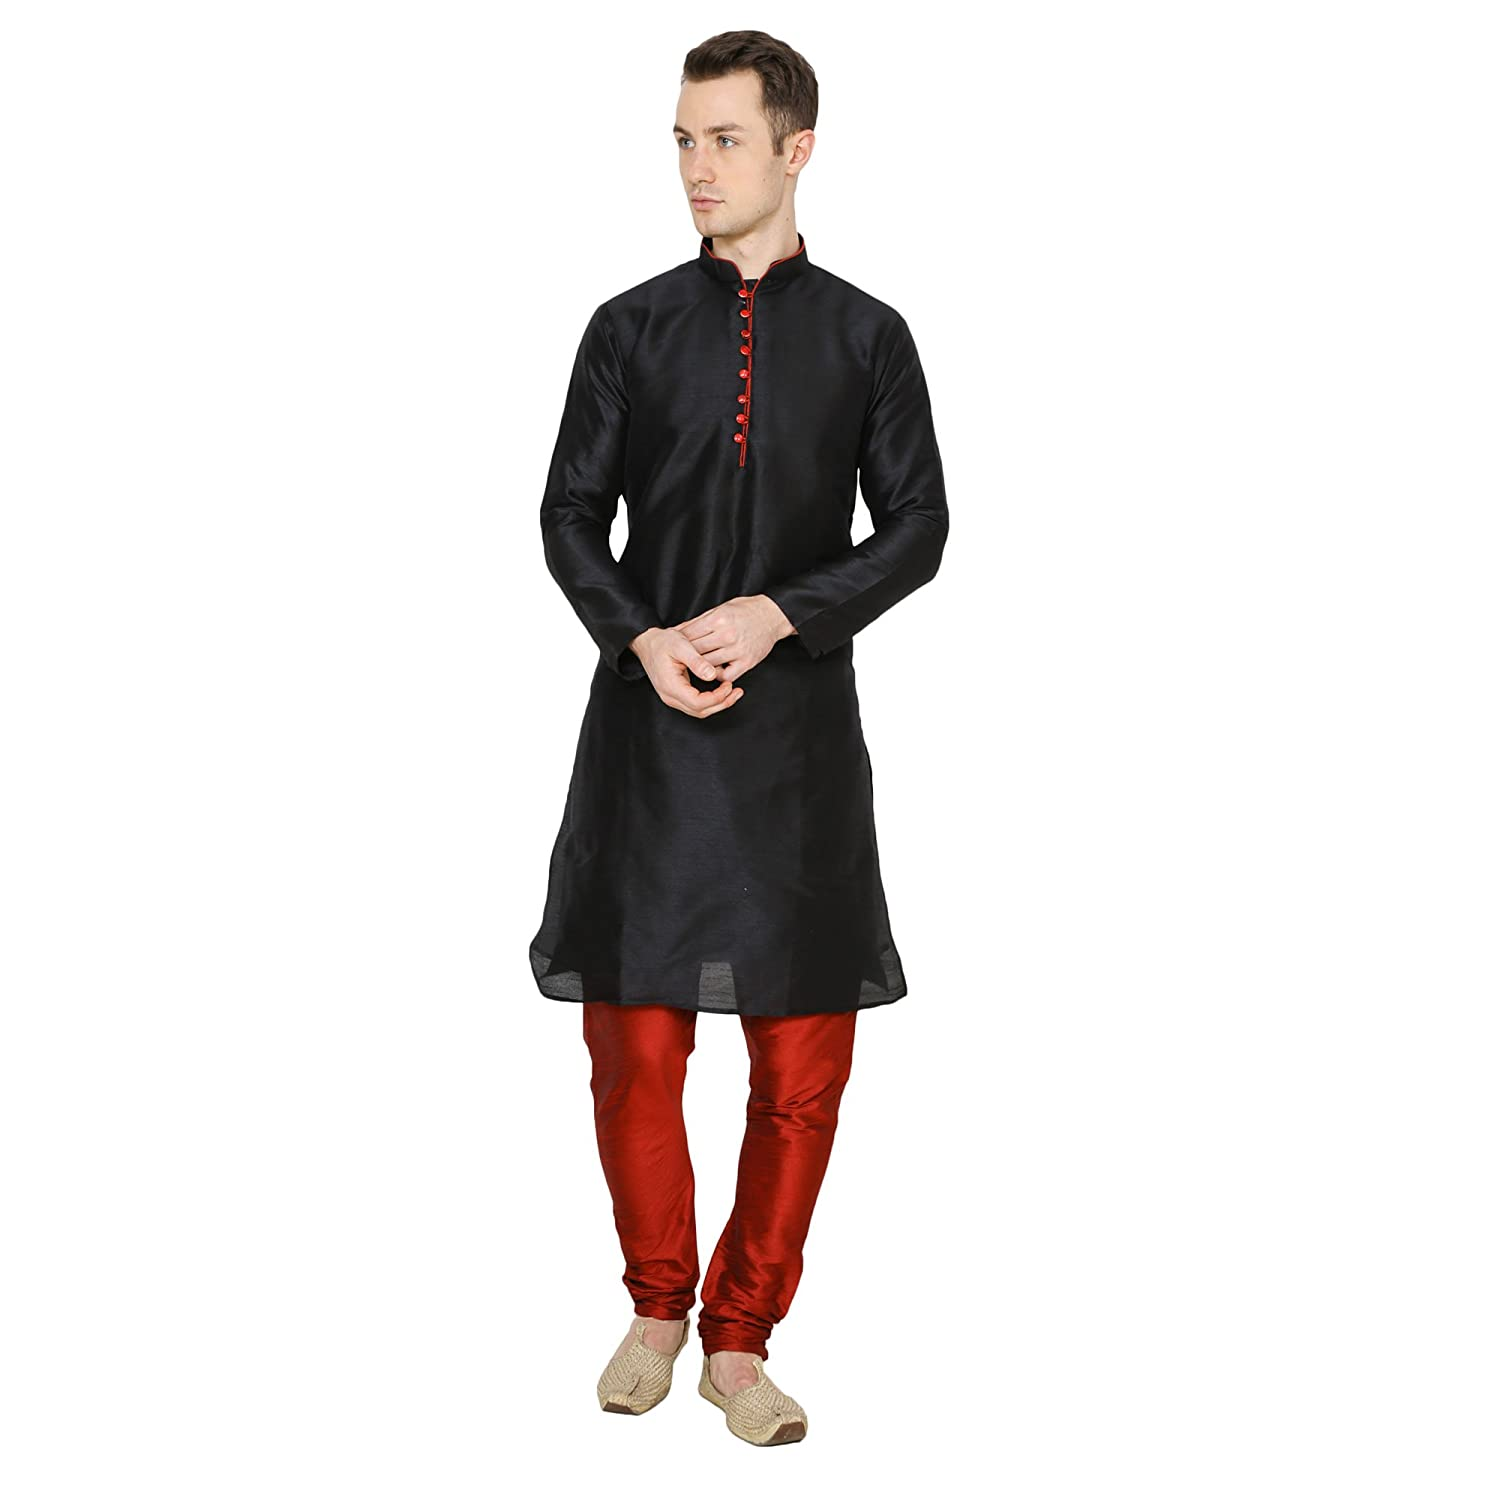 fcafc1070a Royal Kurta Men's Kurta Pyjama Set: Amazon.in: Clothing & Accessories